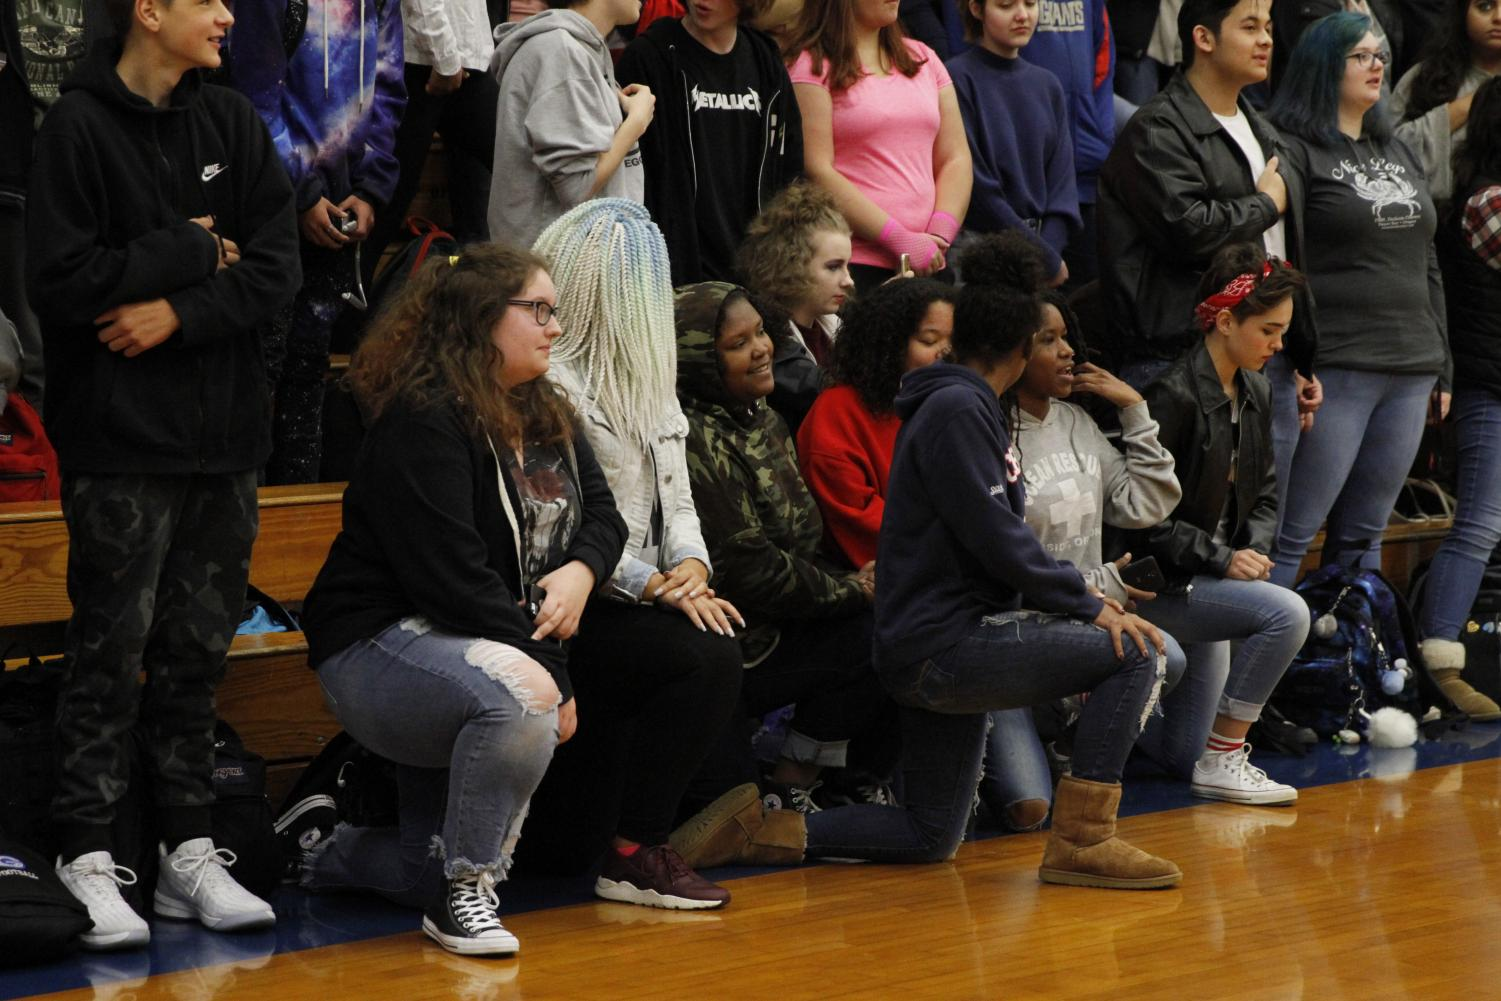 Students take a stand by kneeling during the anthem